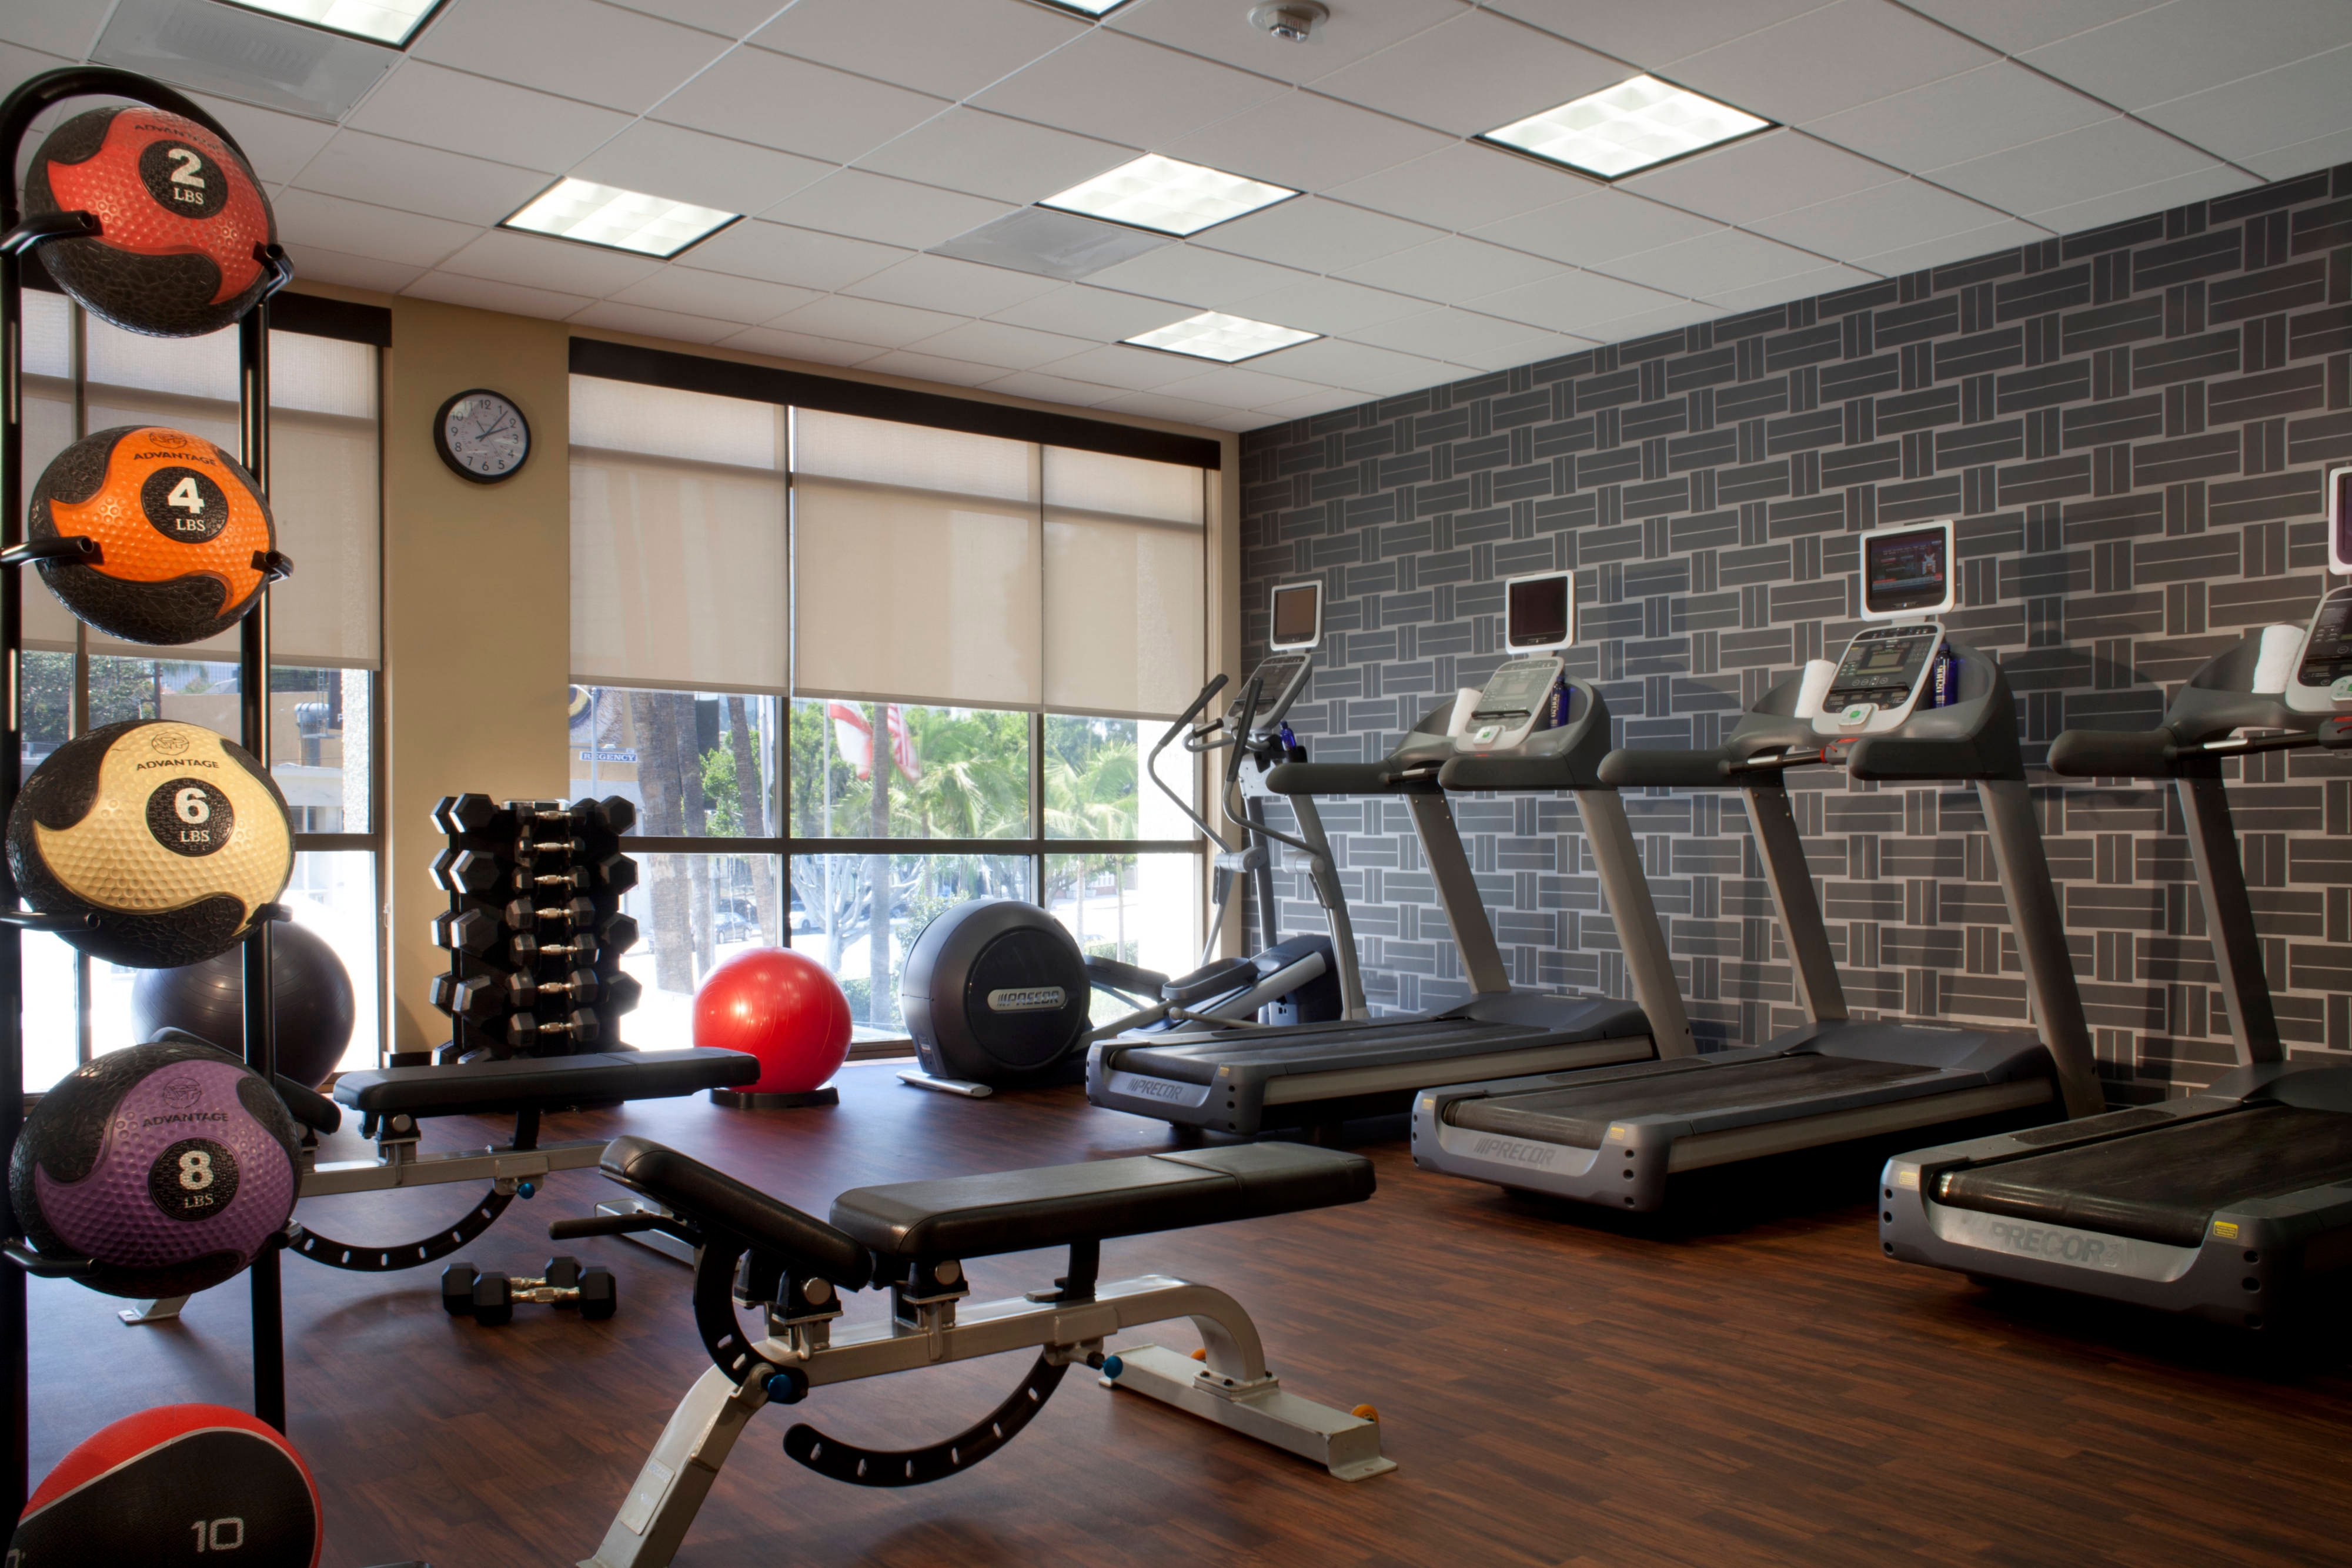 Beverly Hills Hotel Fitness Center